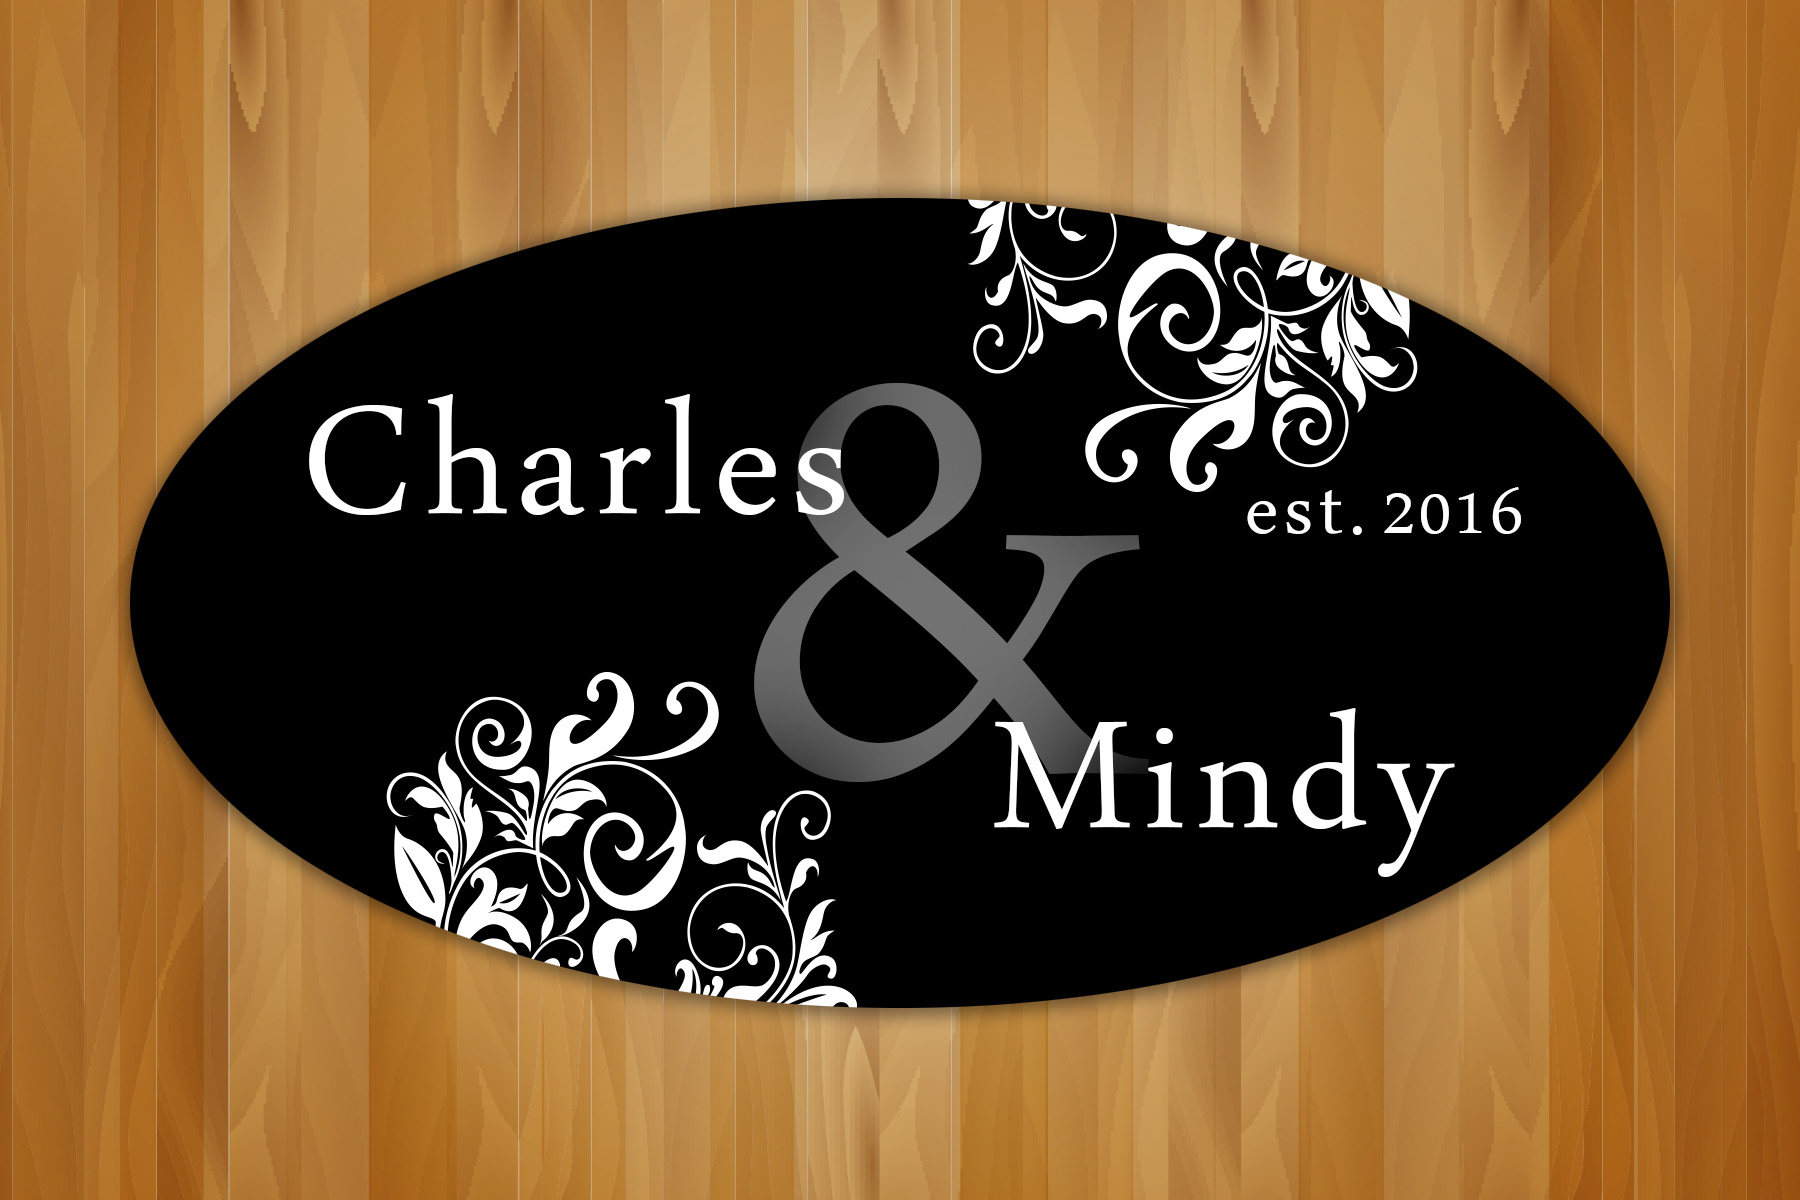 Wedding Floor Graphics | Signline.com